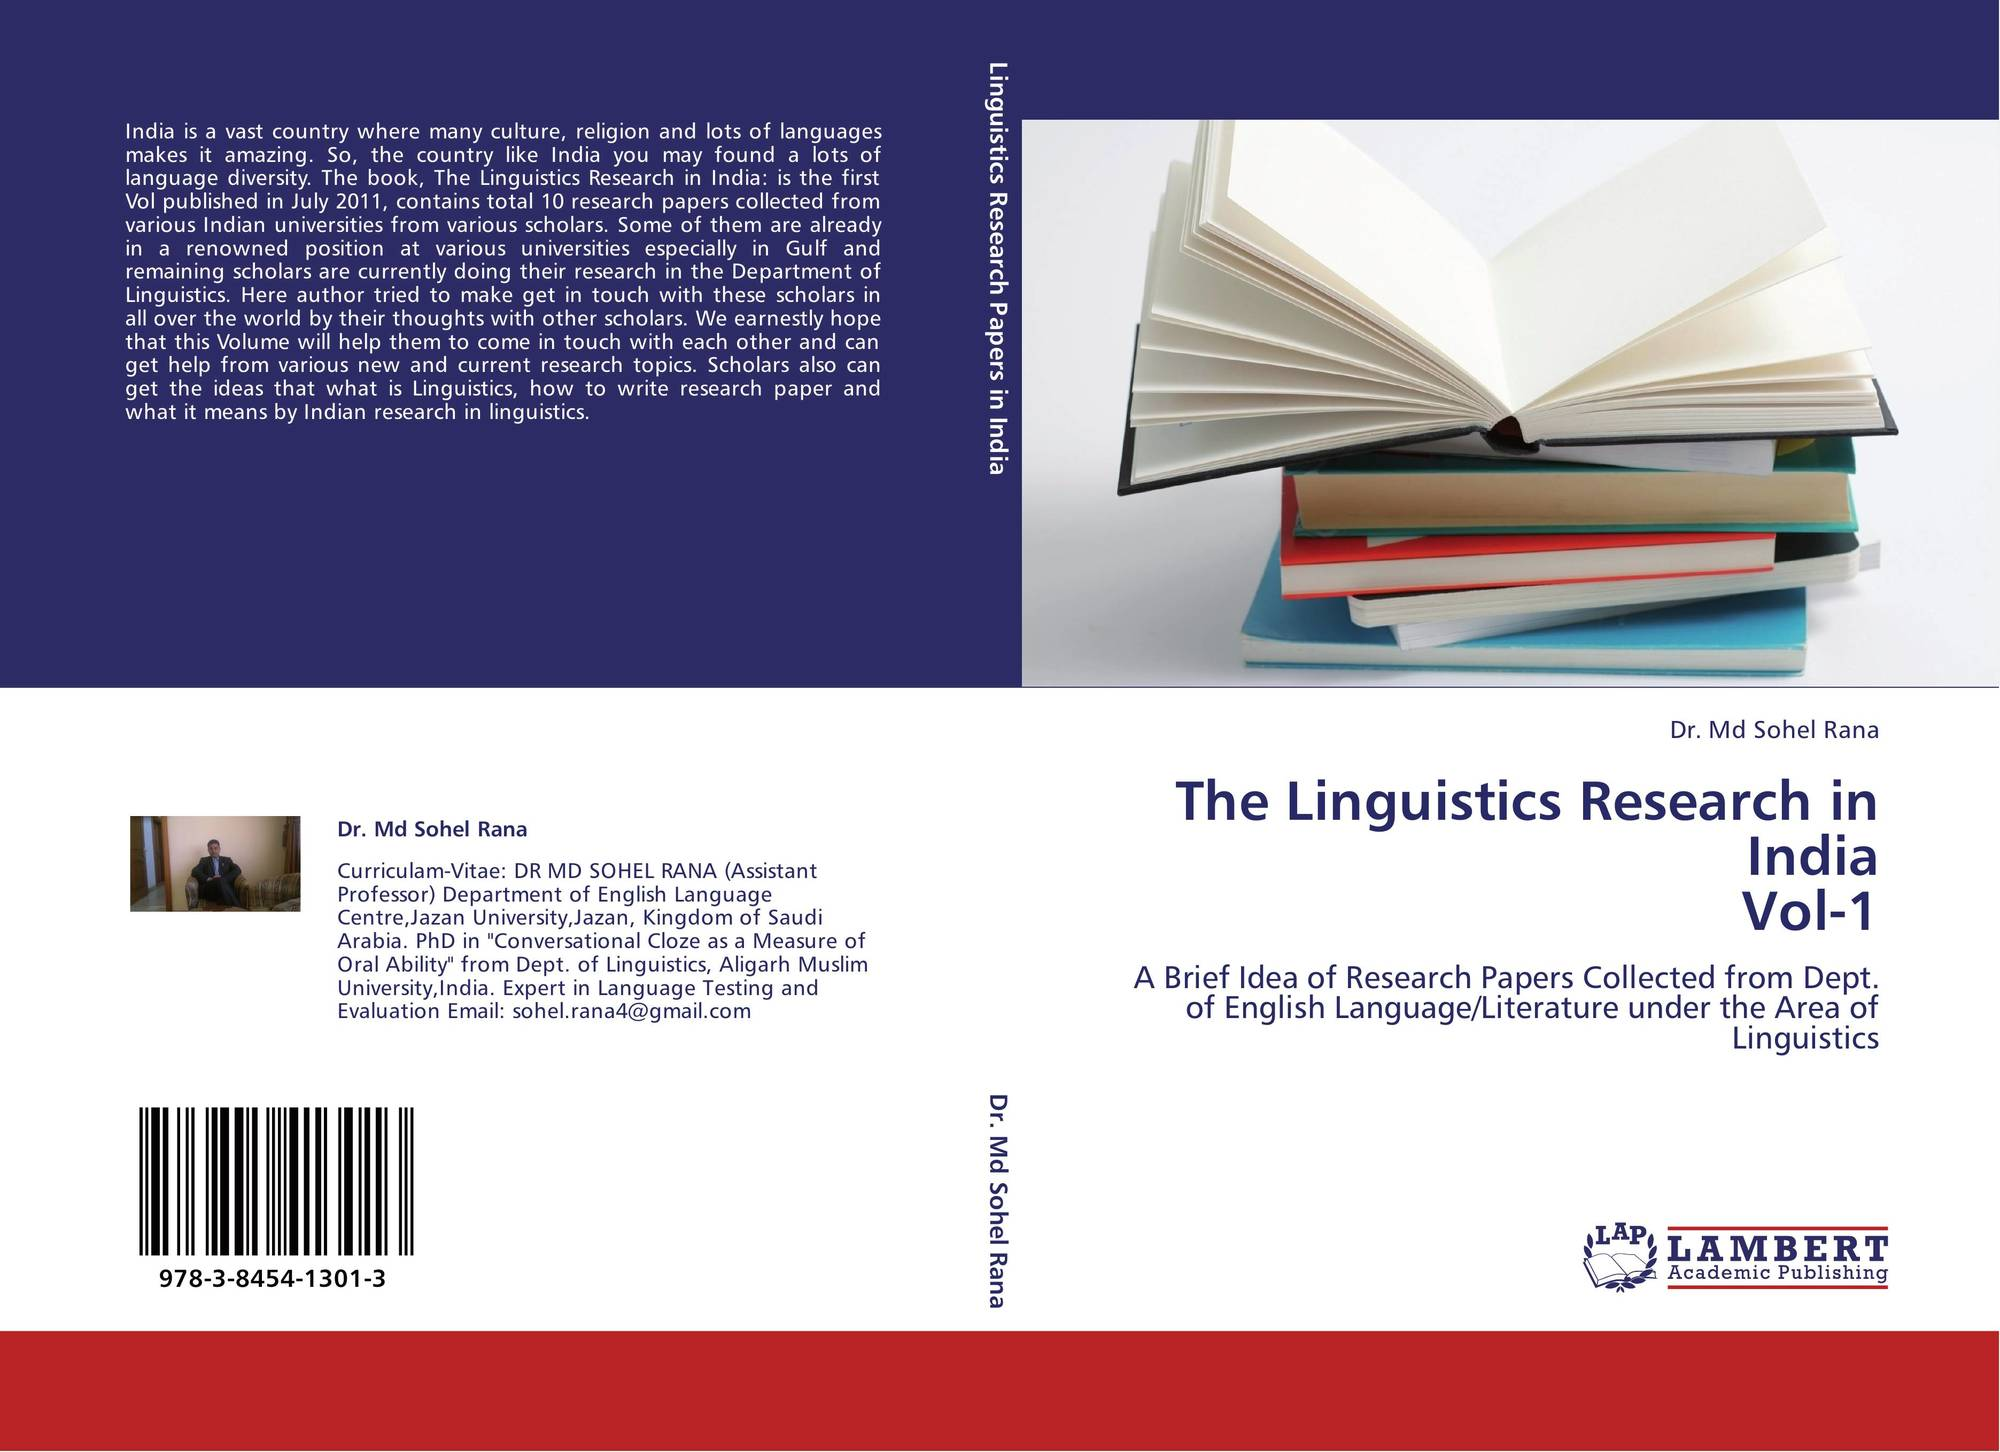 research papers on linguistics The lsa highlights major linguistics research findings in its news room, and provides interpretation of relevant linguistics research for a variety of audiences through its faq pamphlets, articles on the domain of linguistics, and other resources found online.